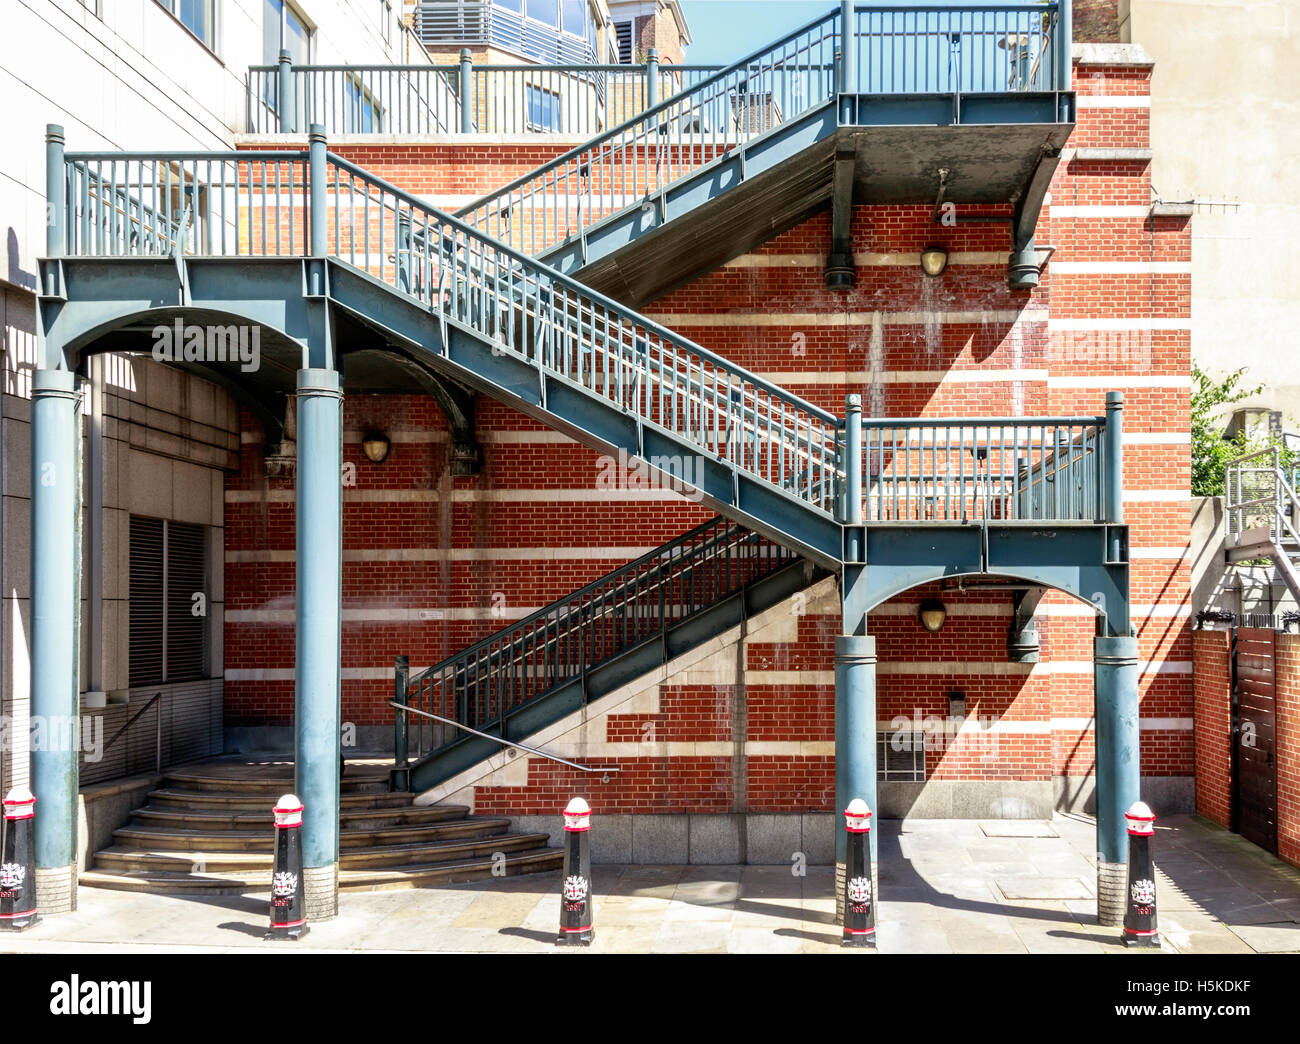 Stairs in Apothecary Street to pathway over railway line in London - Stock Image